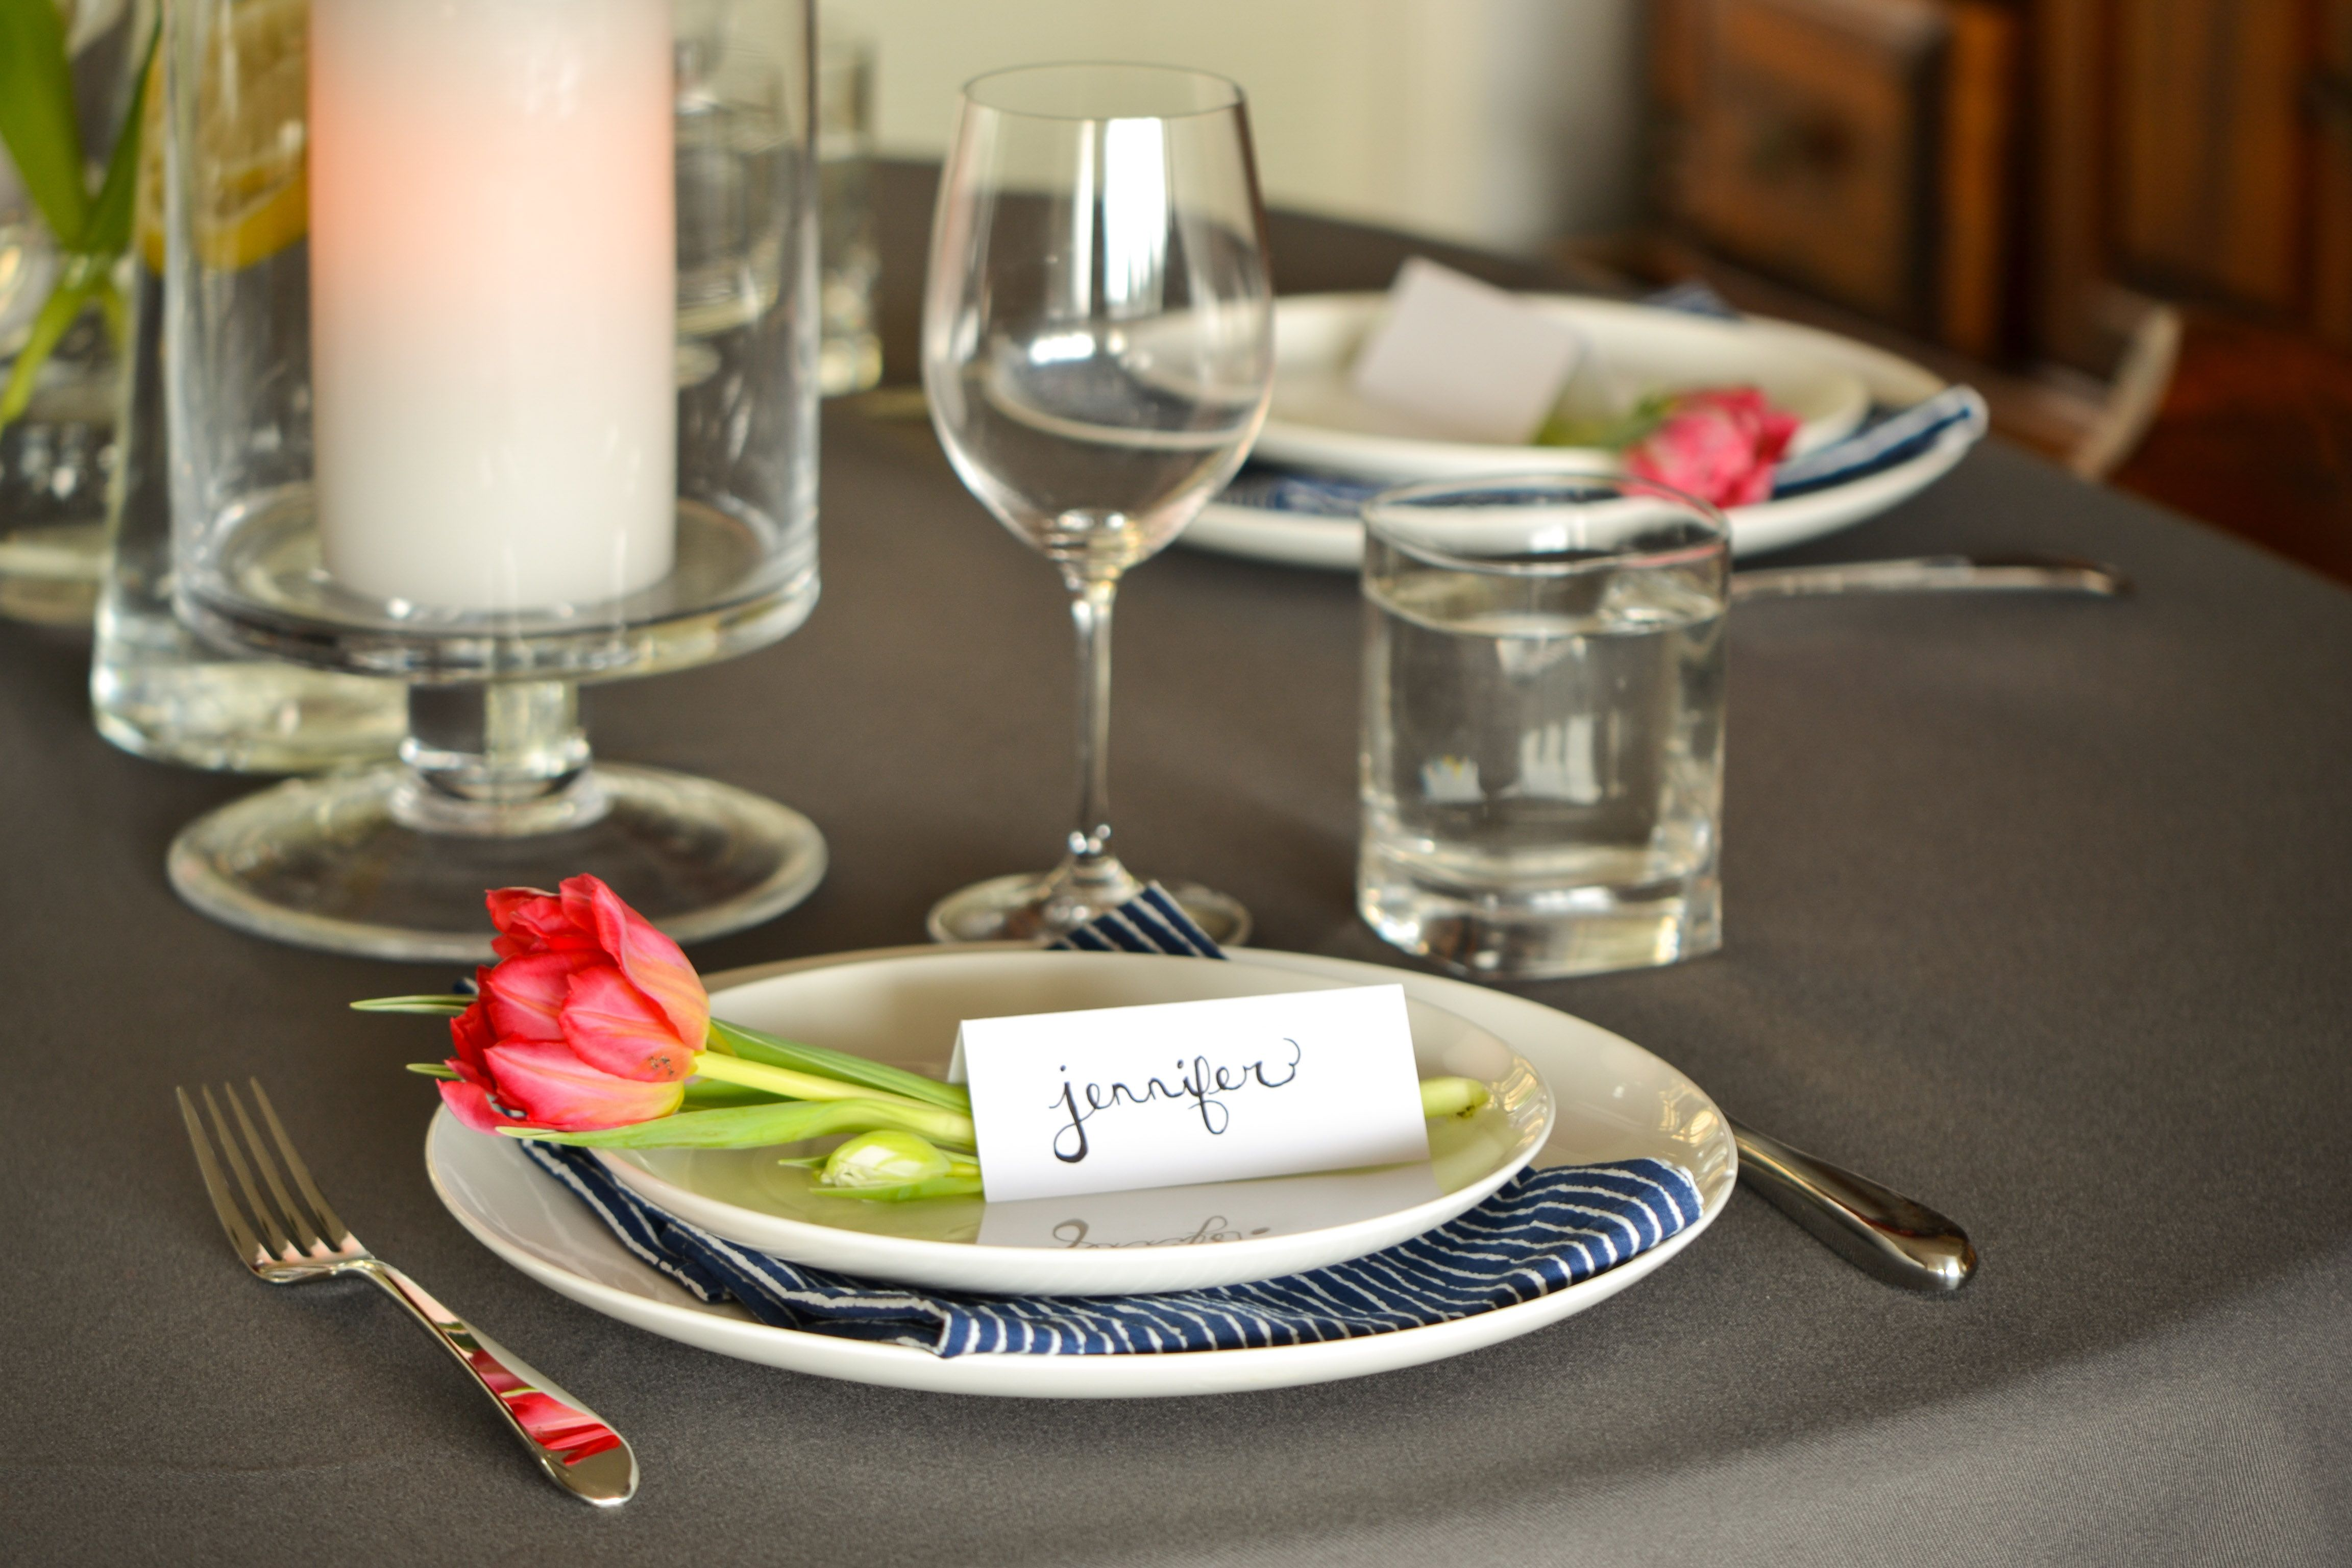 Easy tables cape idea - a single bloom at each place setting